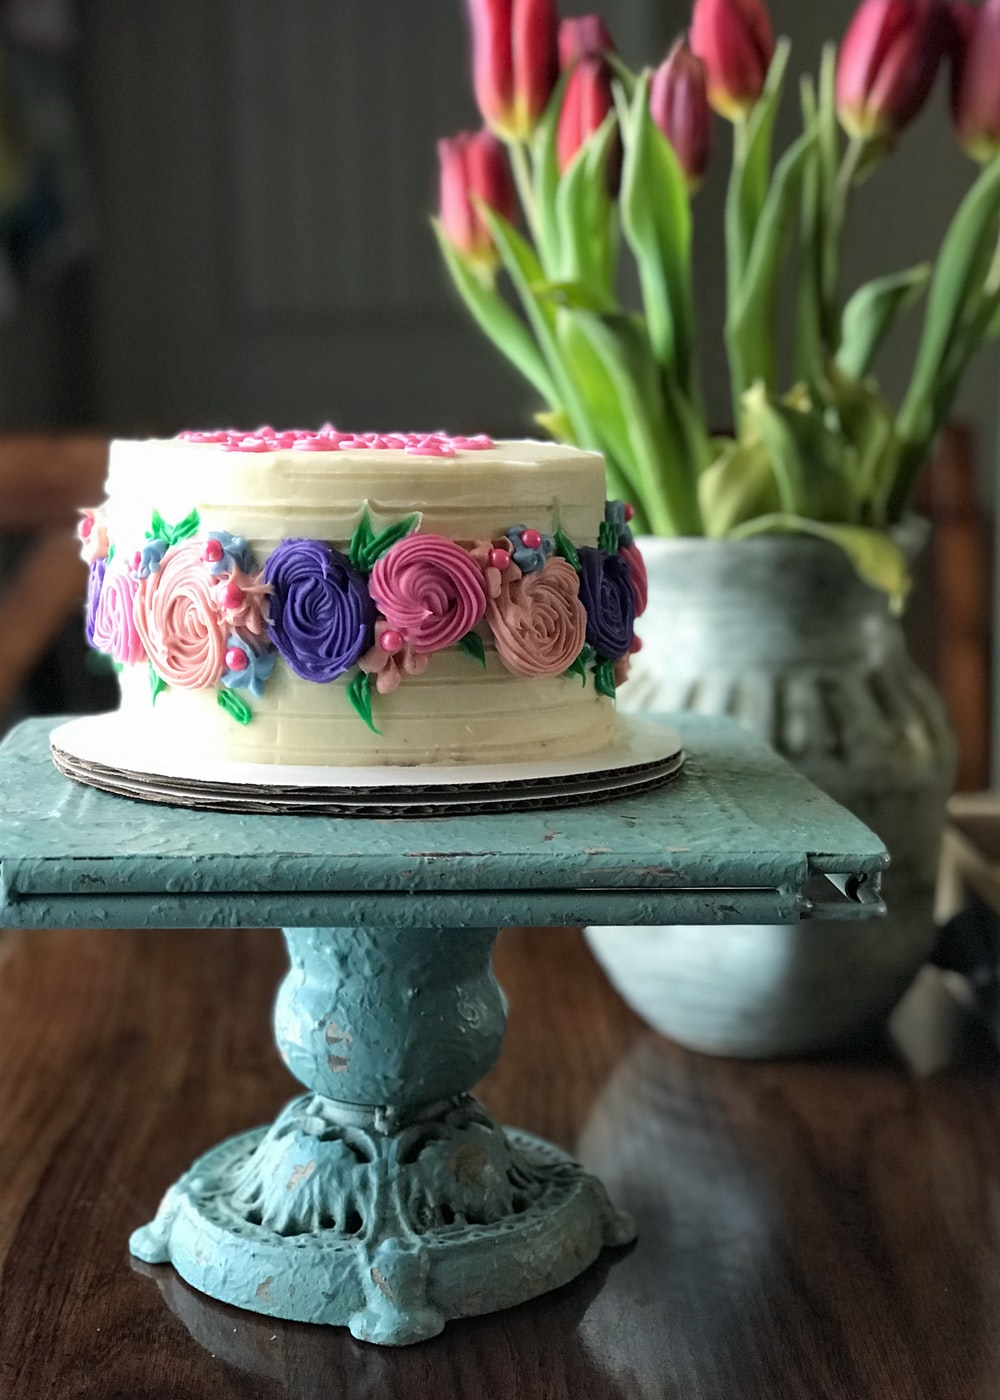 pink and white floral cake on black stand